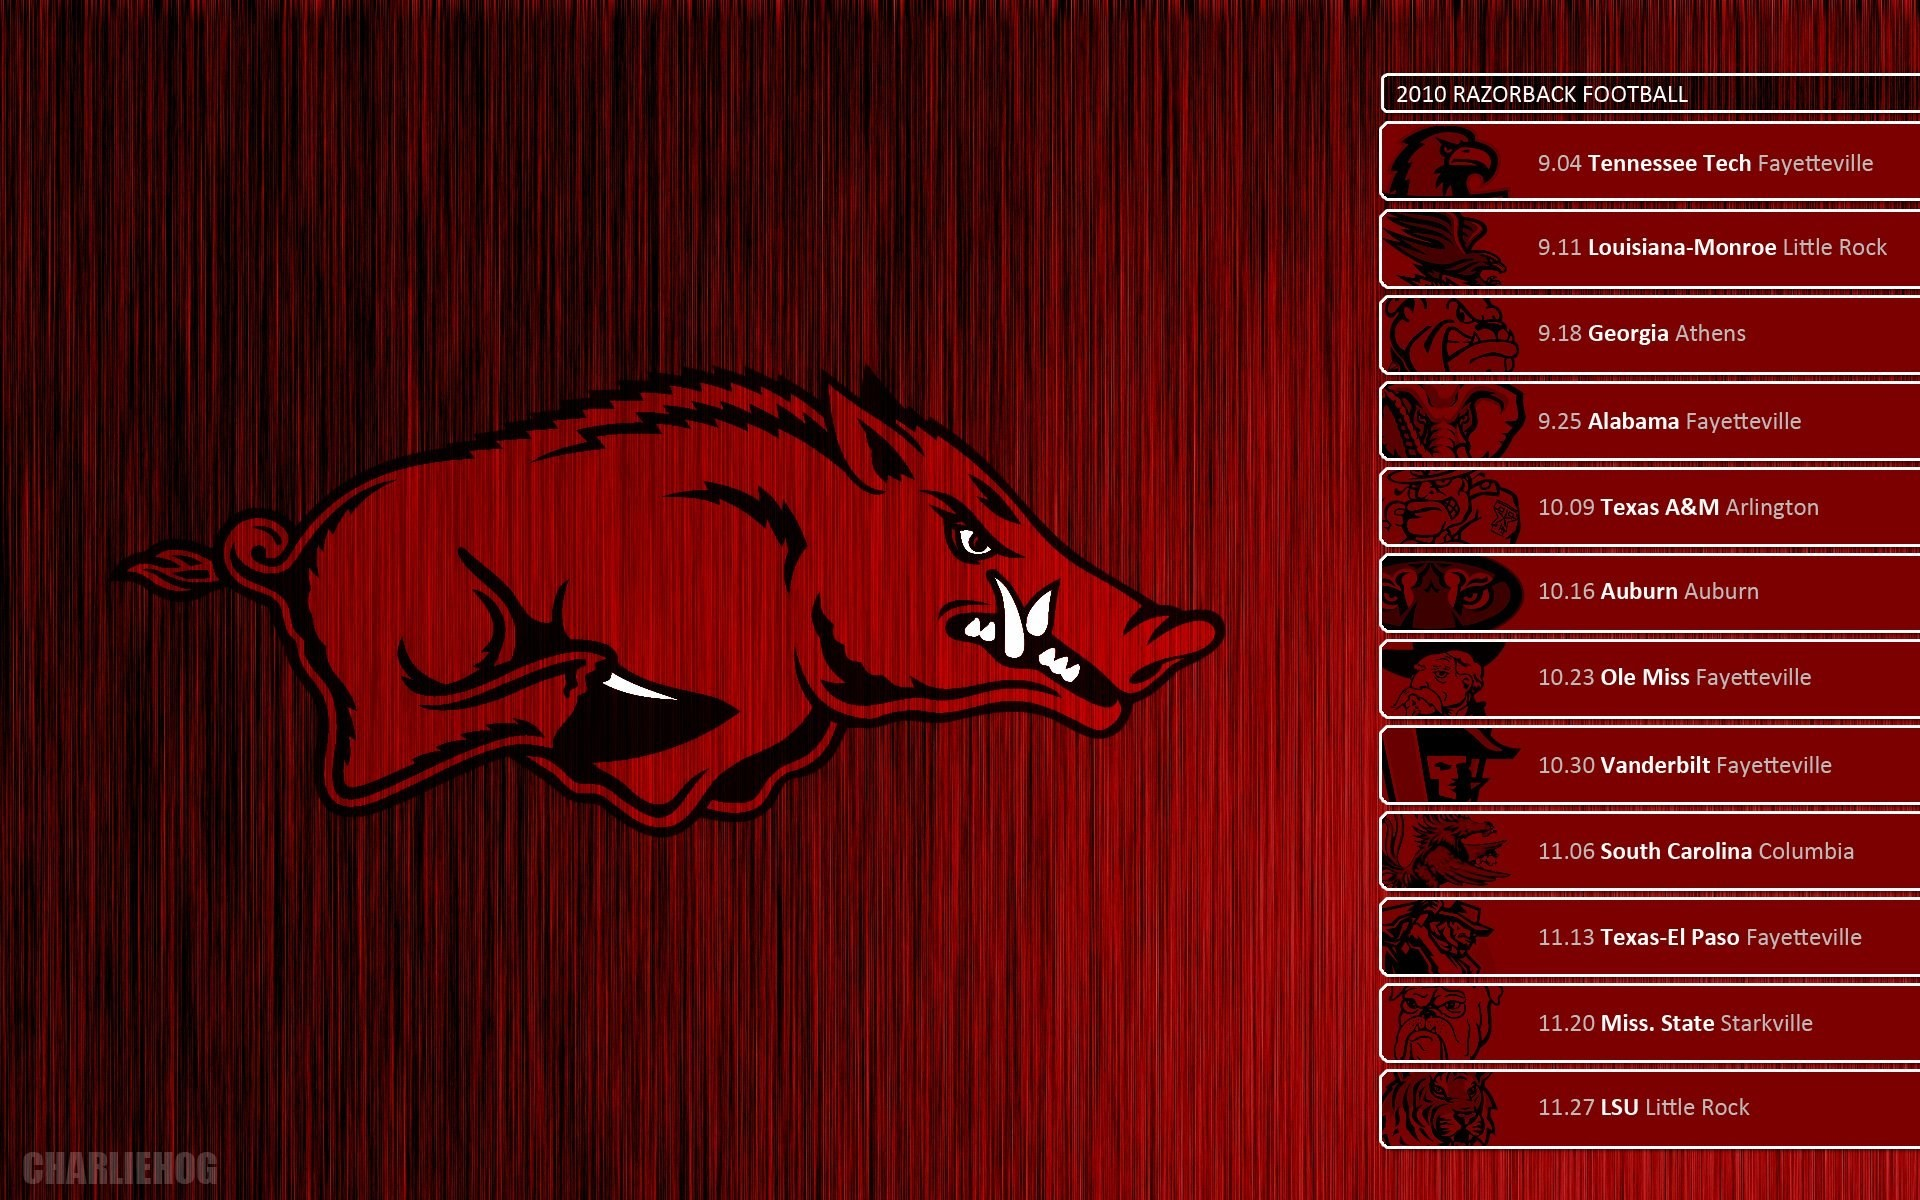 1920x1200 razorback wallpaper iphone 5